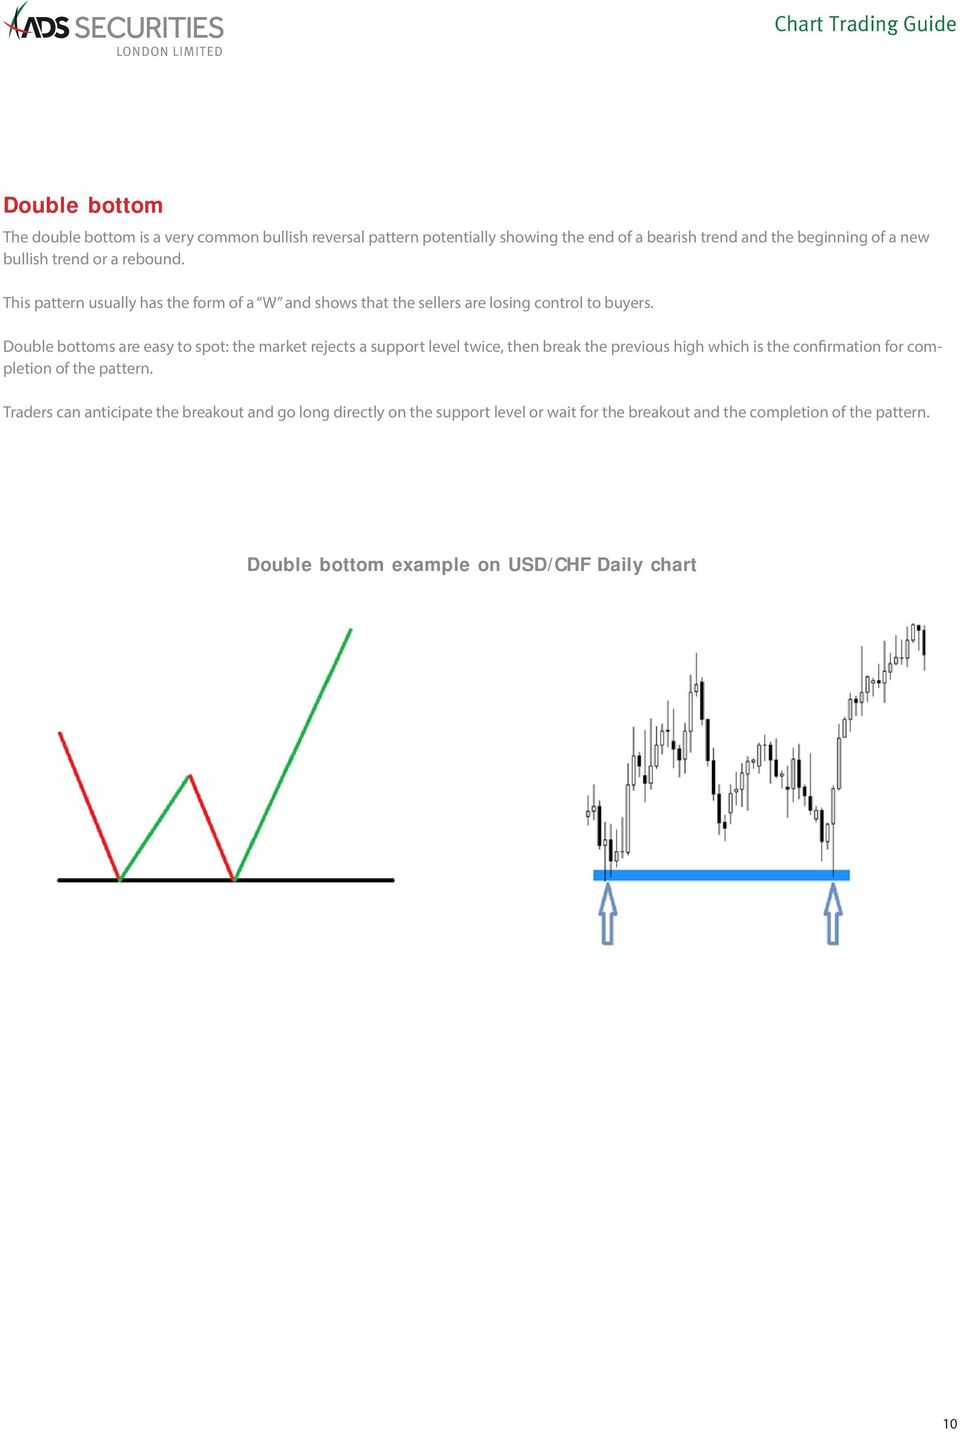 Double bottoms are easy to spot: the market rejects a support level twice, then break the previous high which is the confirmation for completion of the